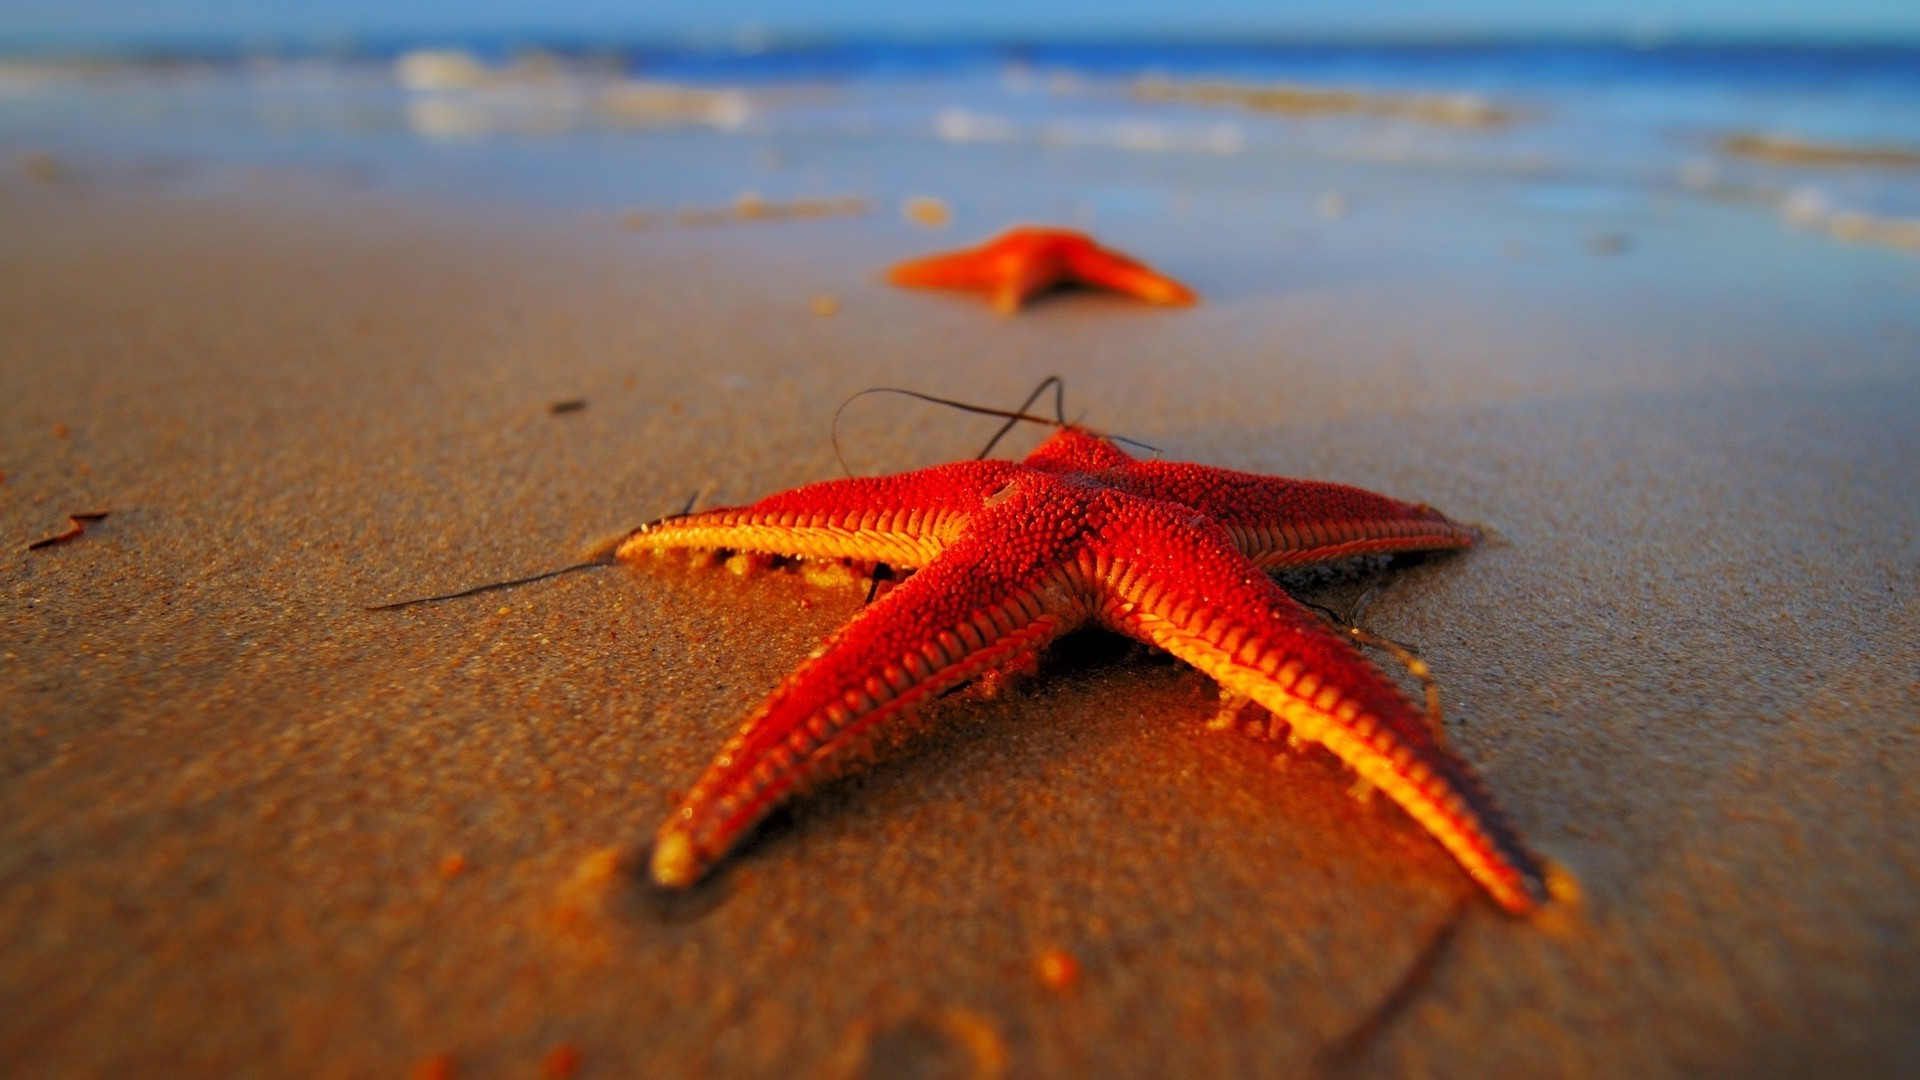 Starfish resting on the sand